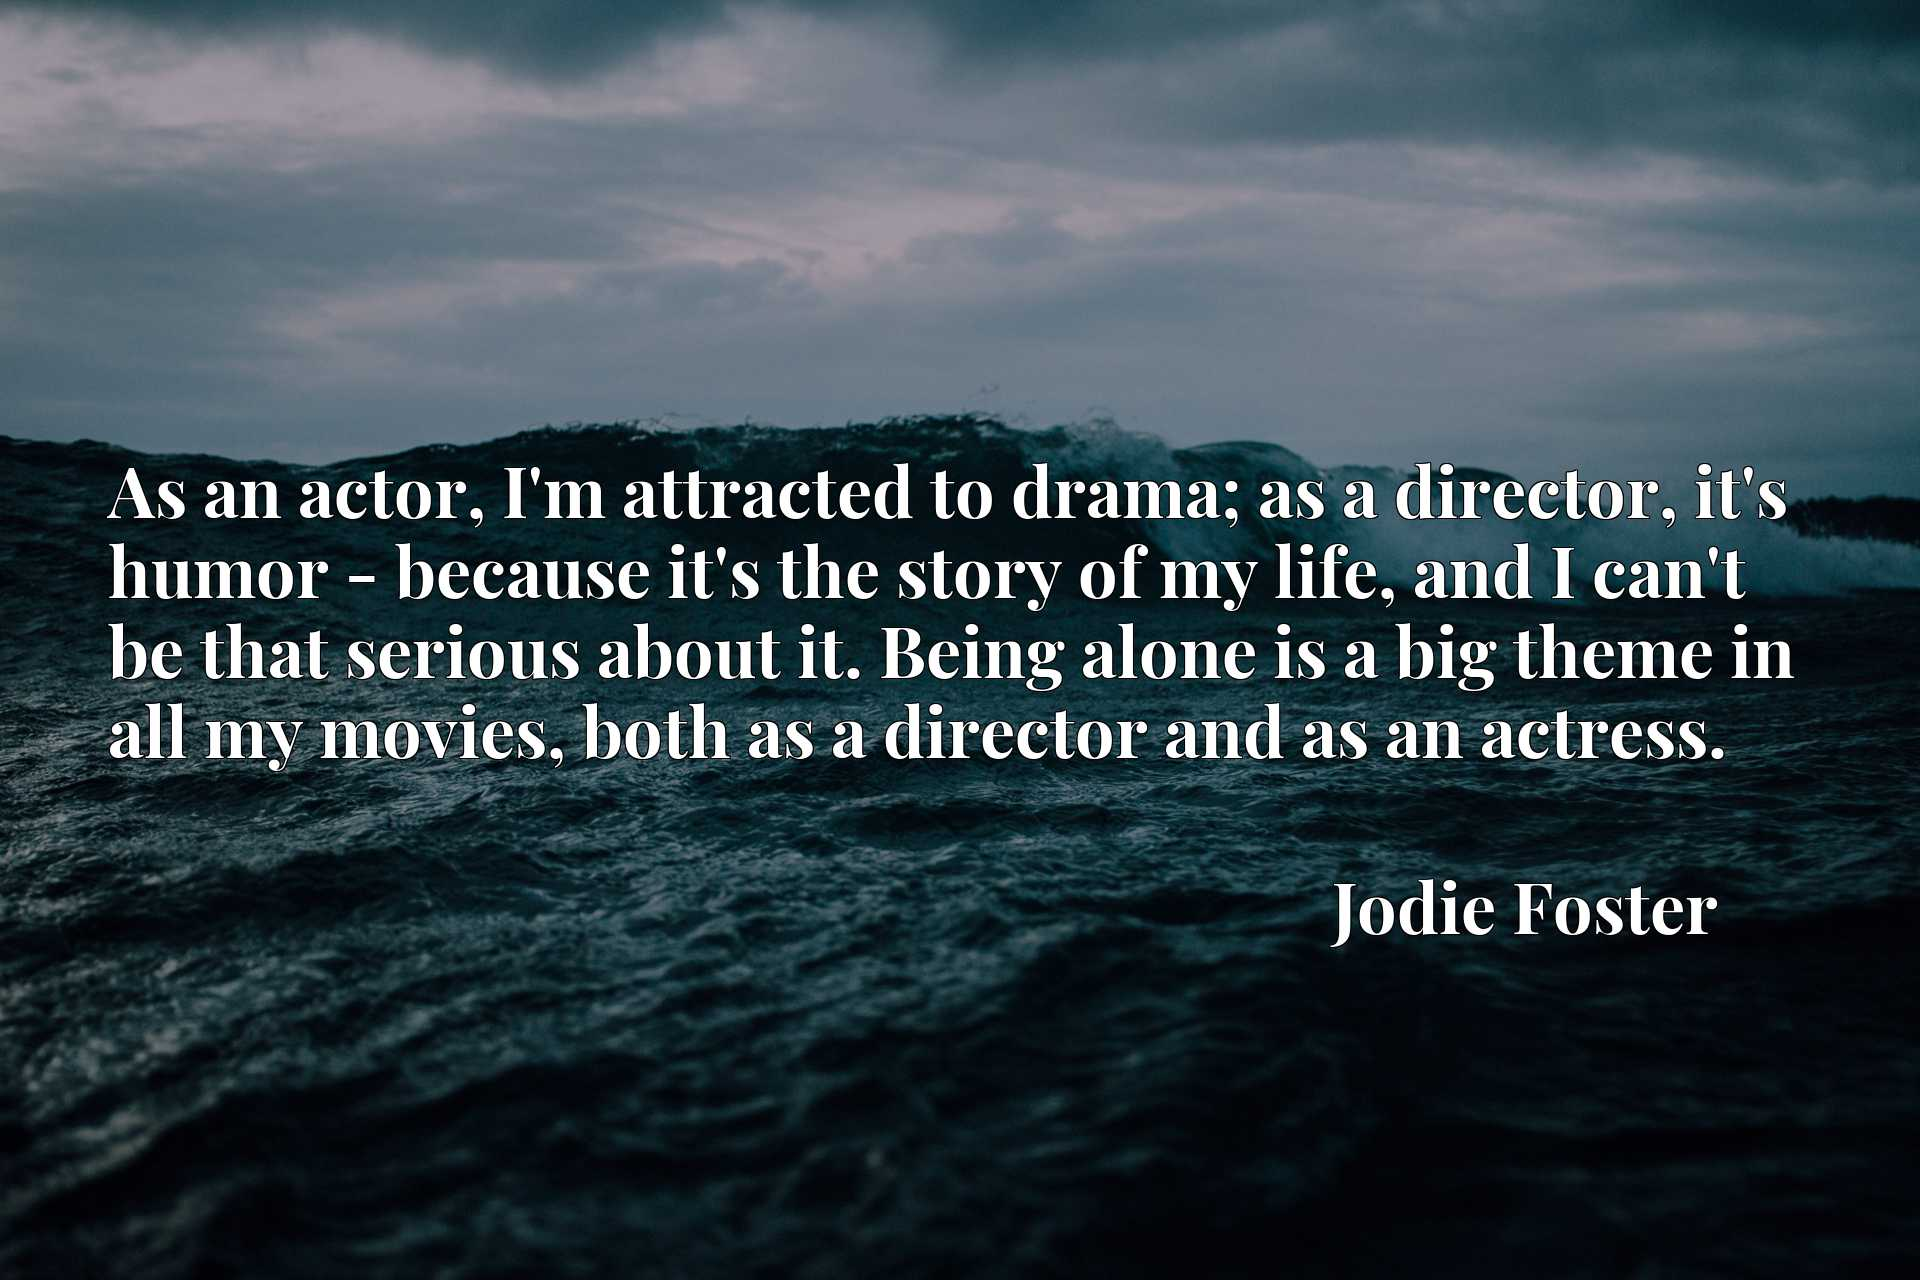 As an actor, I'm attracted to drama; as a director, it's humor - because it's the story of my life, and I can't be that serious about it. Being alone is a big theme in all my movies, both as a director and as an actress.